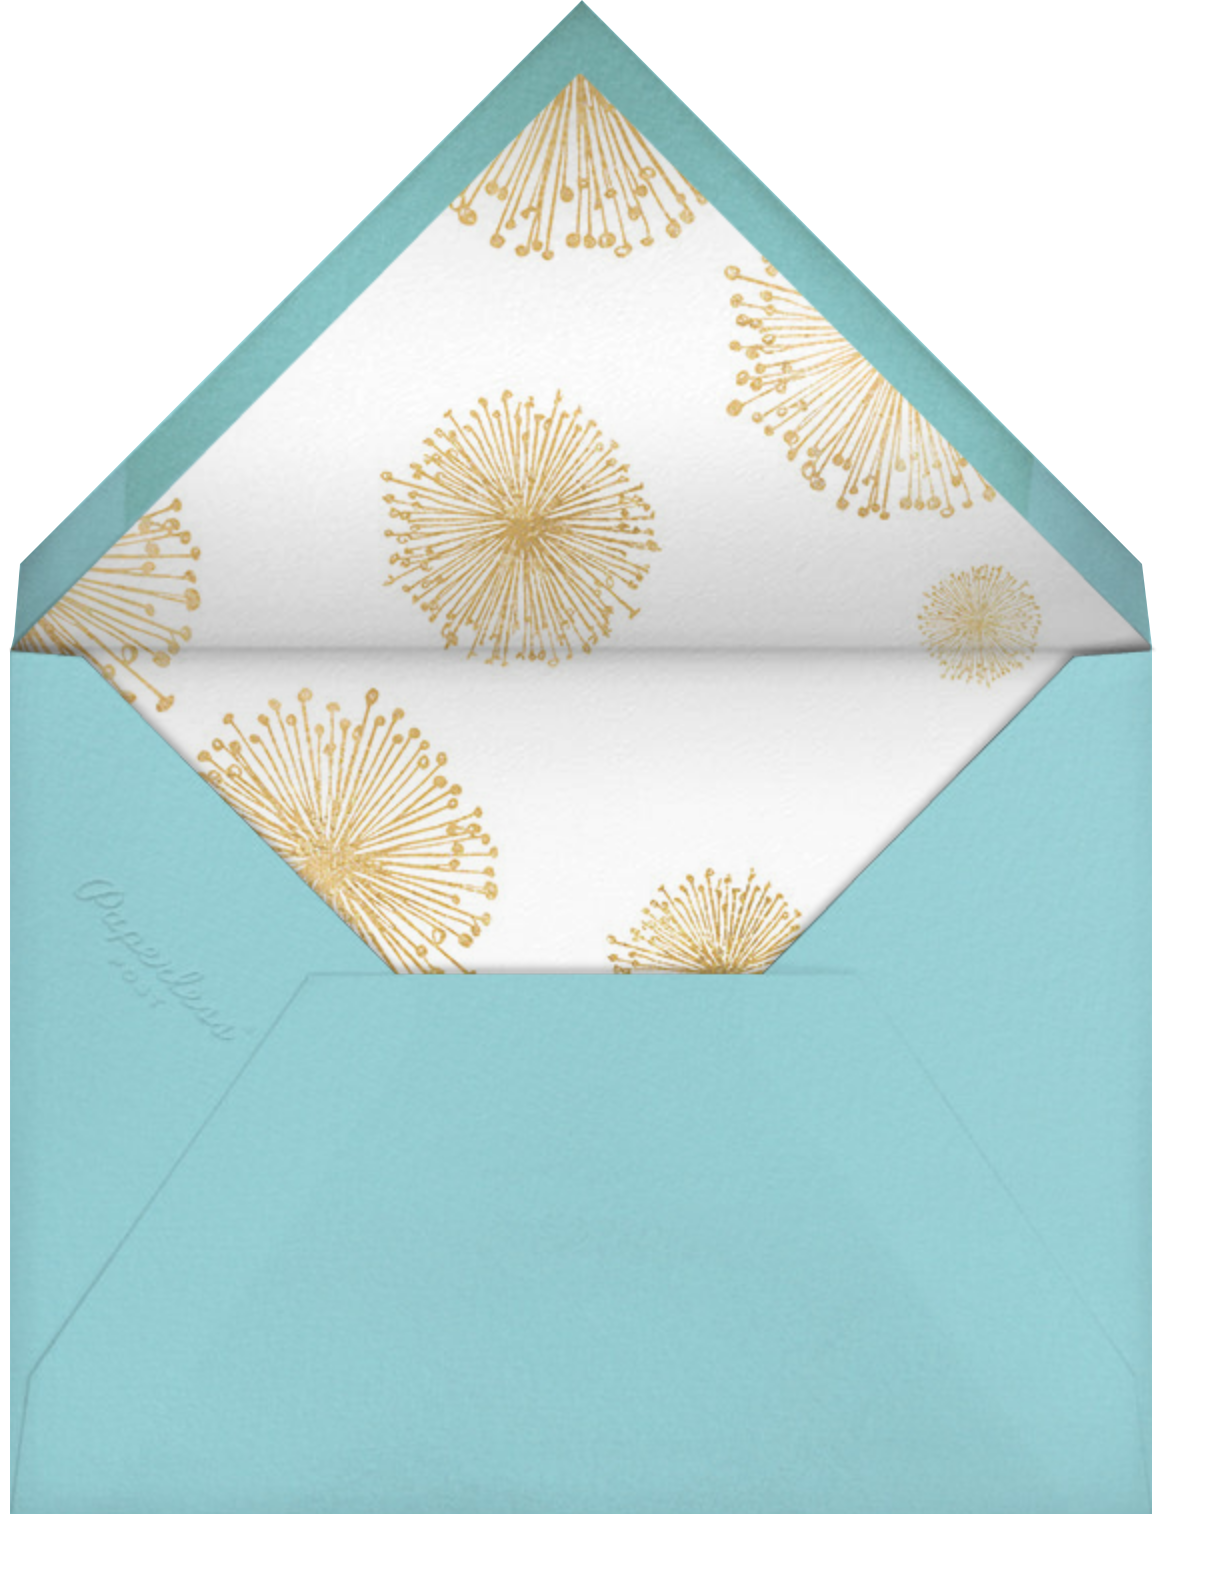 Dandelion (Save the Date) - White/Gold - Paperless Post - Save the date - envelope back